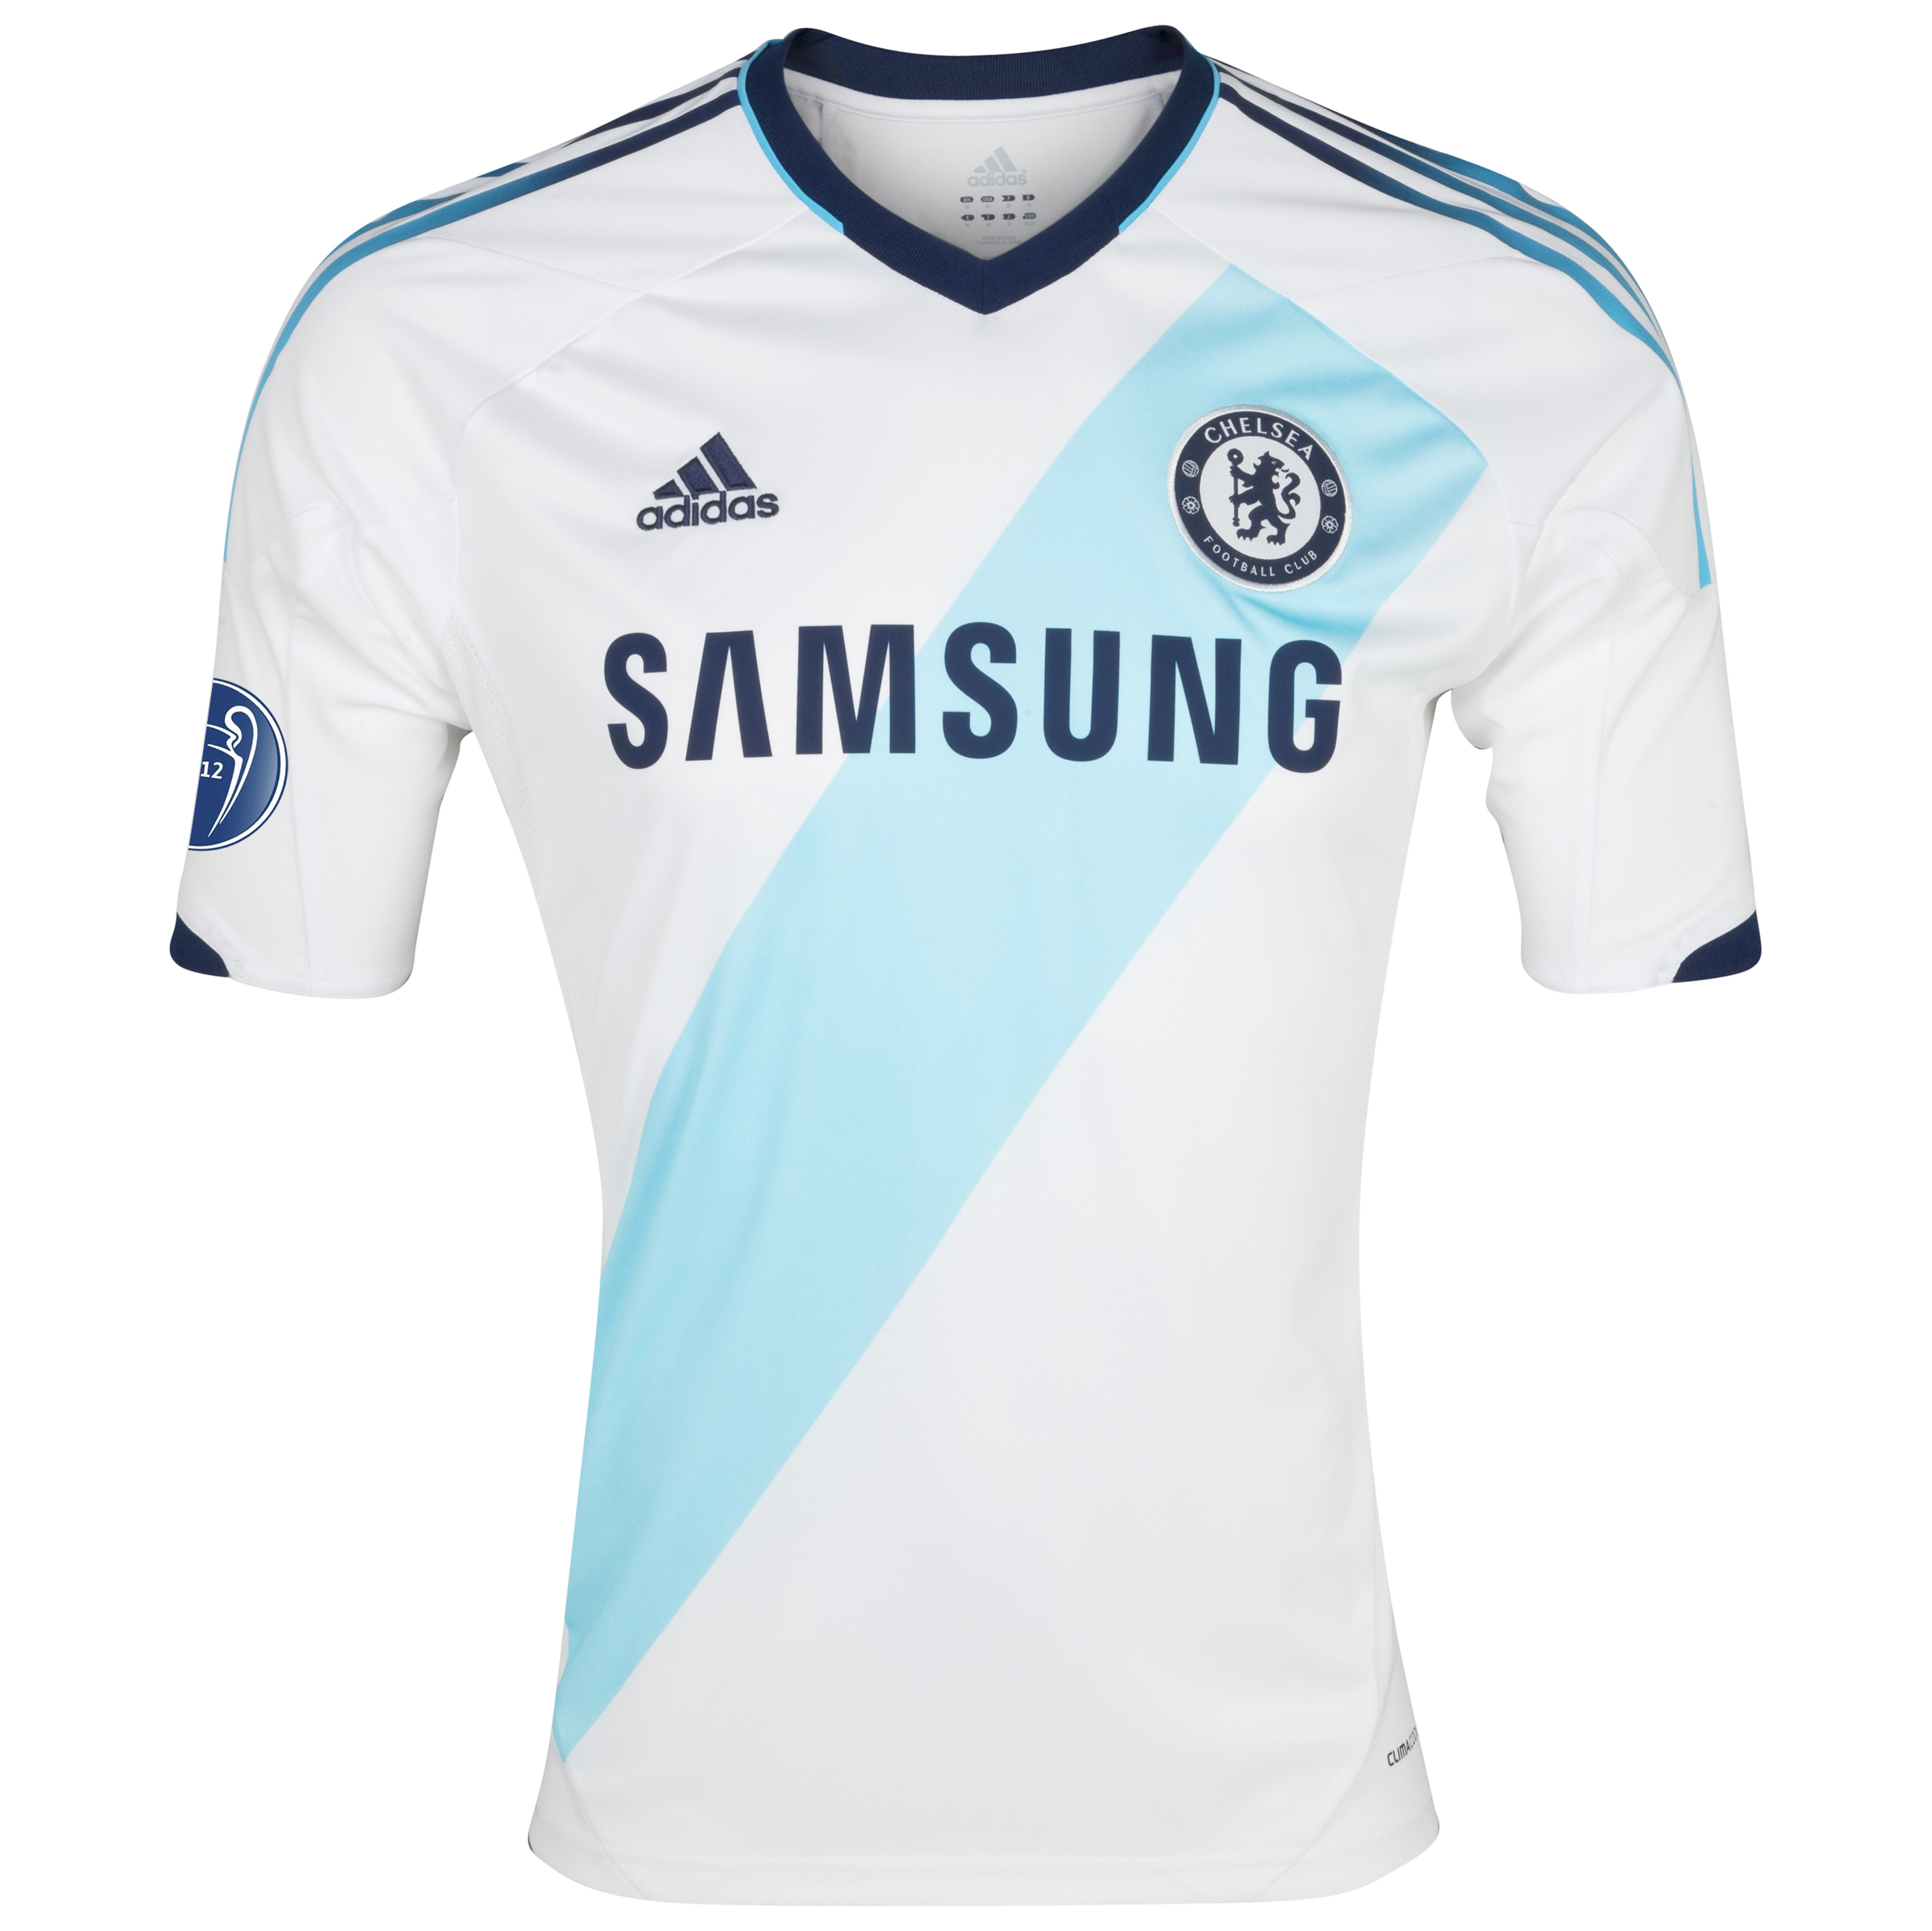 Chelsea UEFA Champions League Away Shirt 2012/13 with Winners Badge